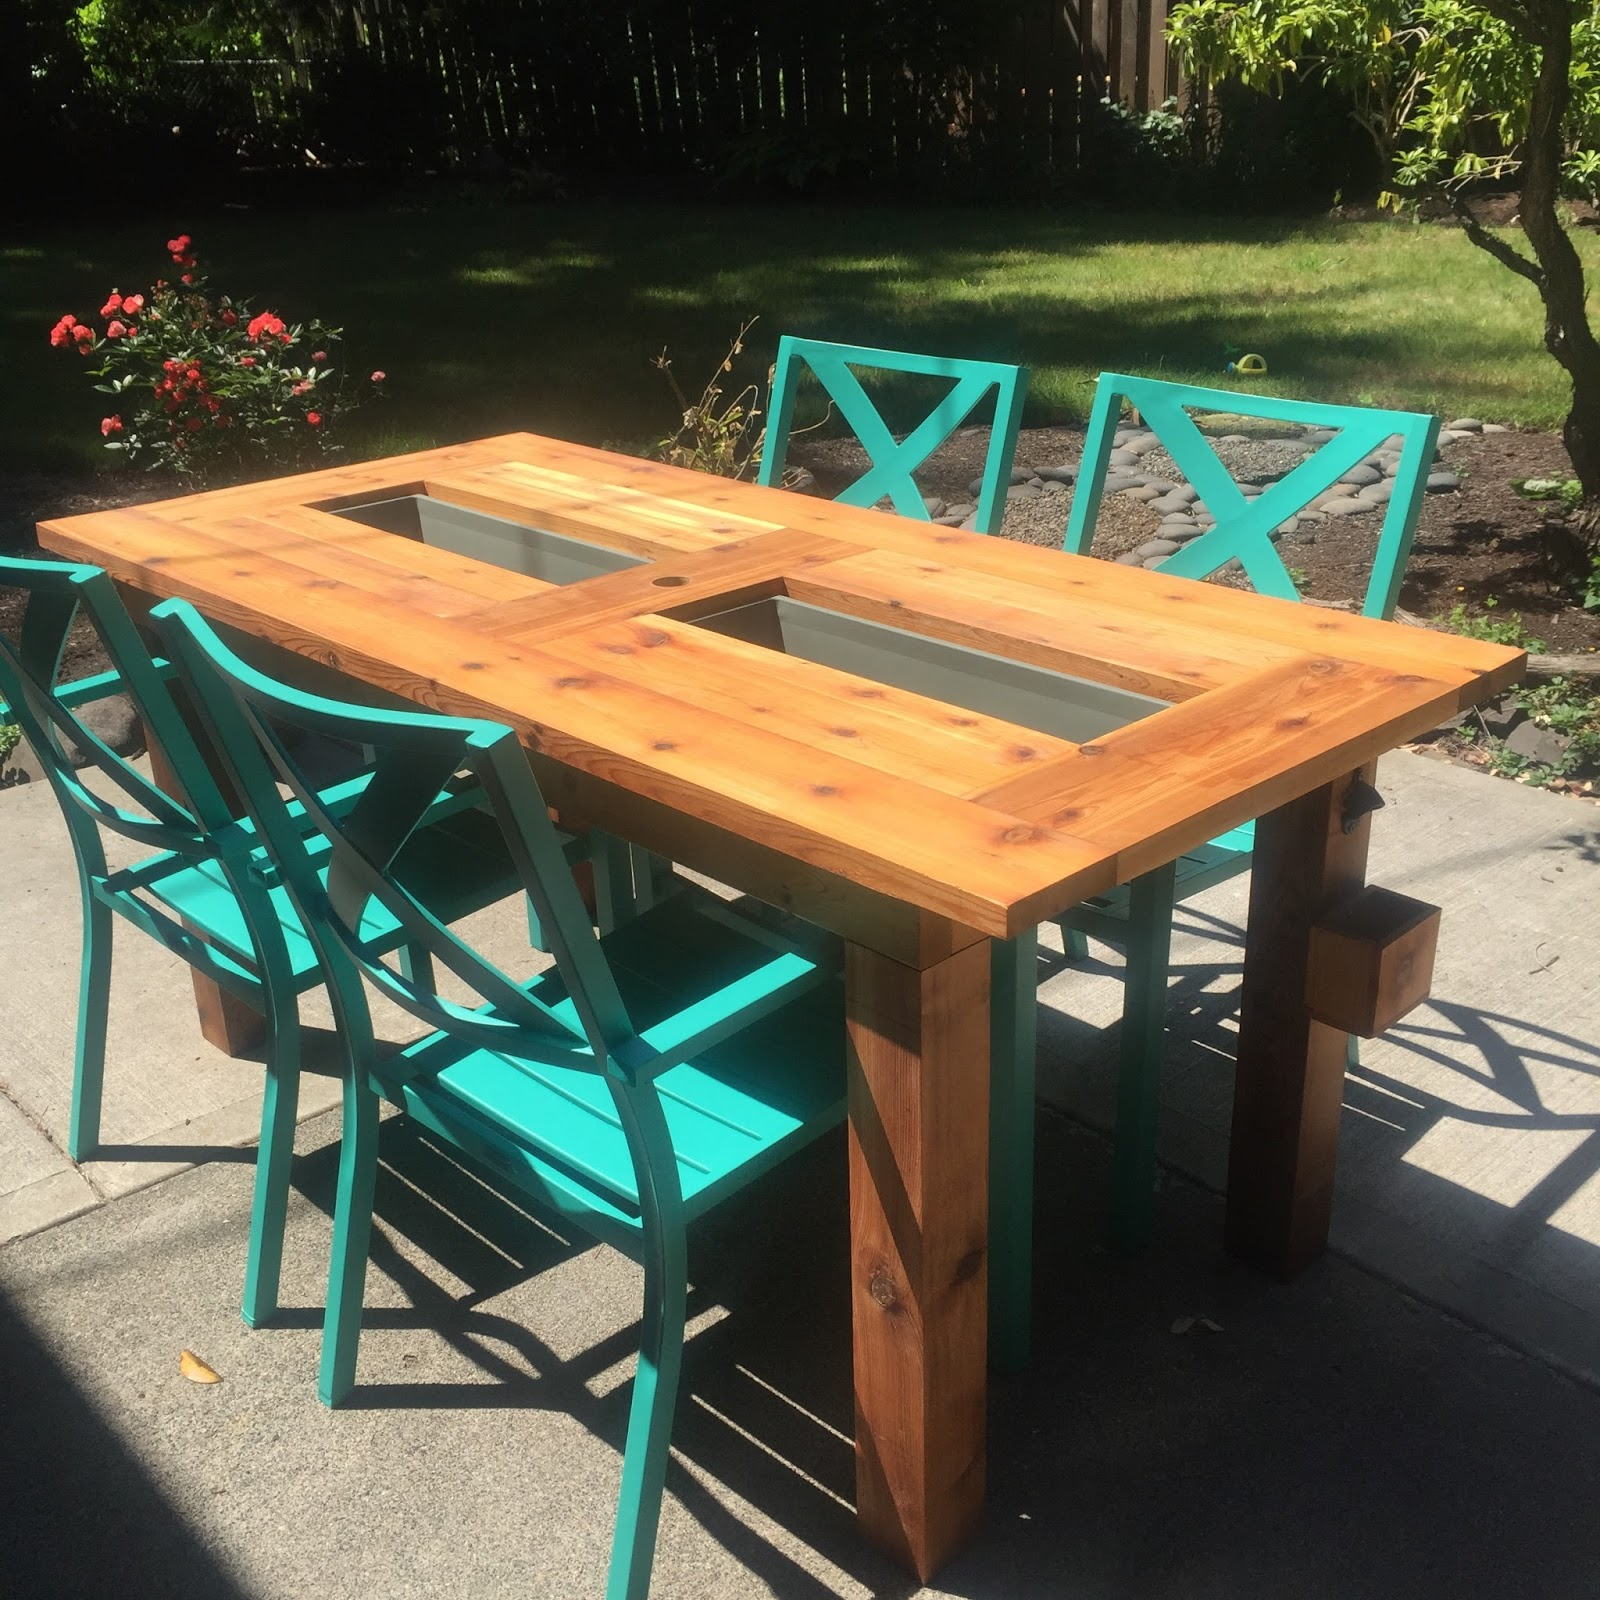 Ice box wood ice box wood cedar tables for Table with cooler in middle